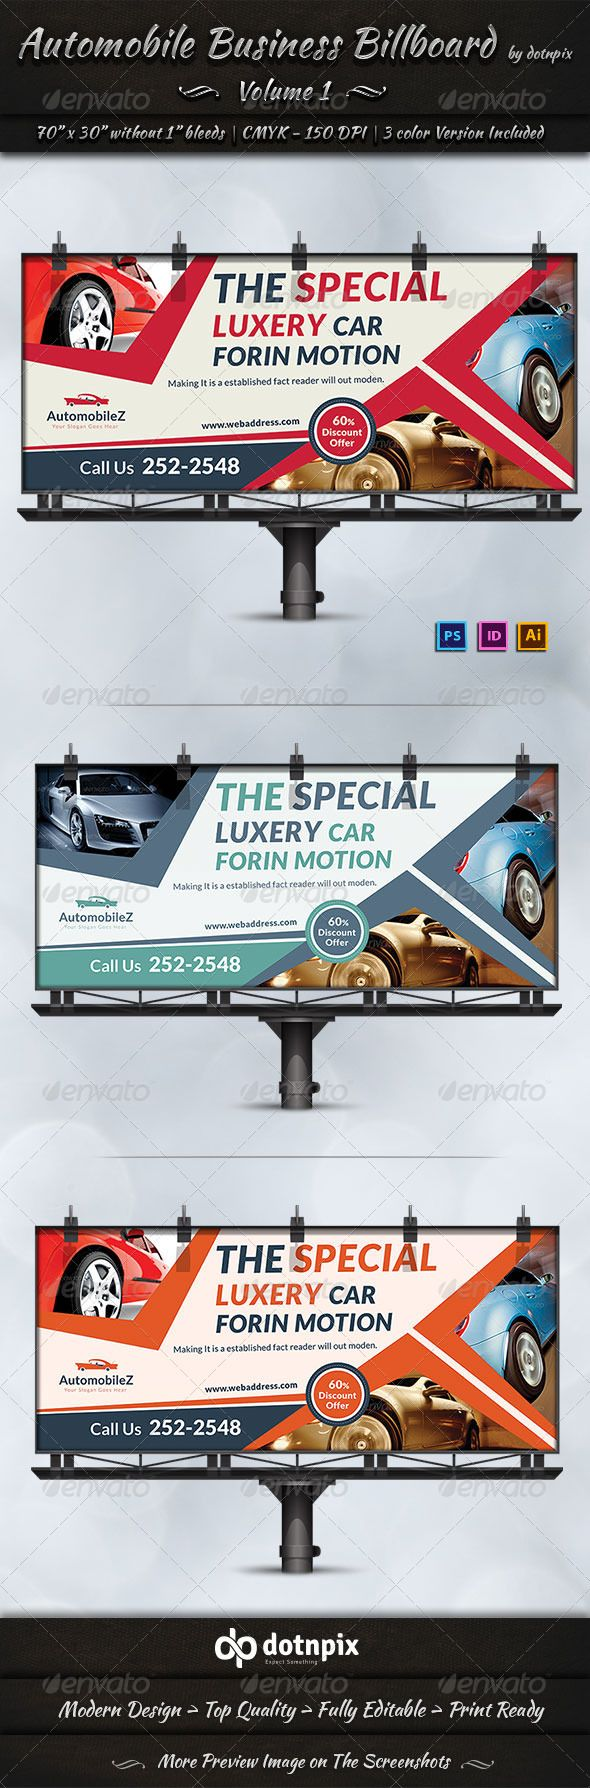 Automobile Business Billboard | Volume 1 — Photoshop PSD #print template #Car brands • Available here → https://graphicriver.net/item/automobile-business-billboard-volume-1/6965378?ref=pxcr